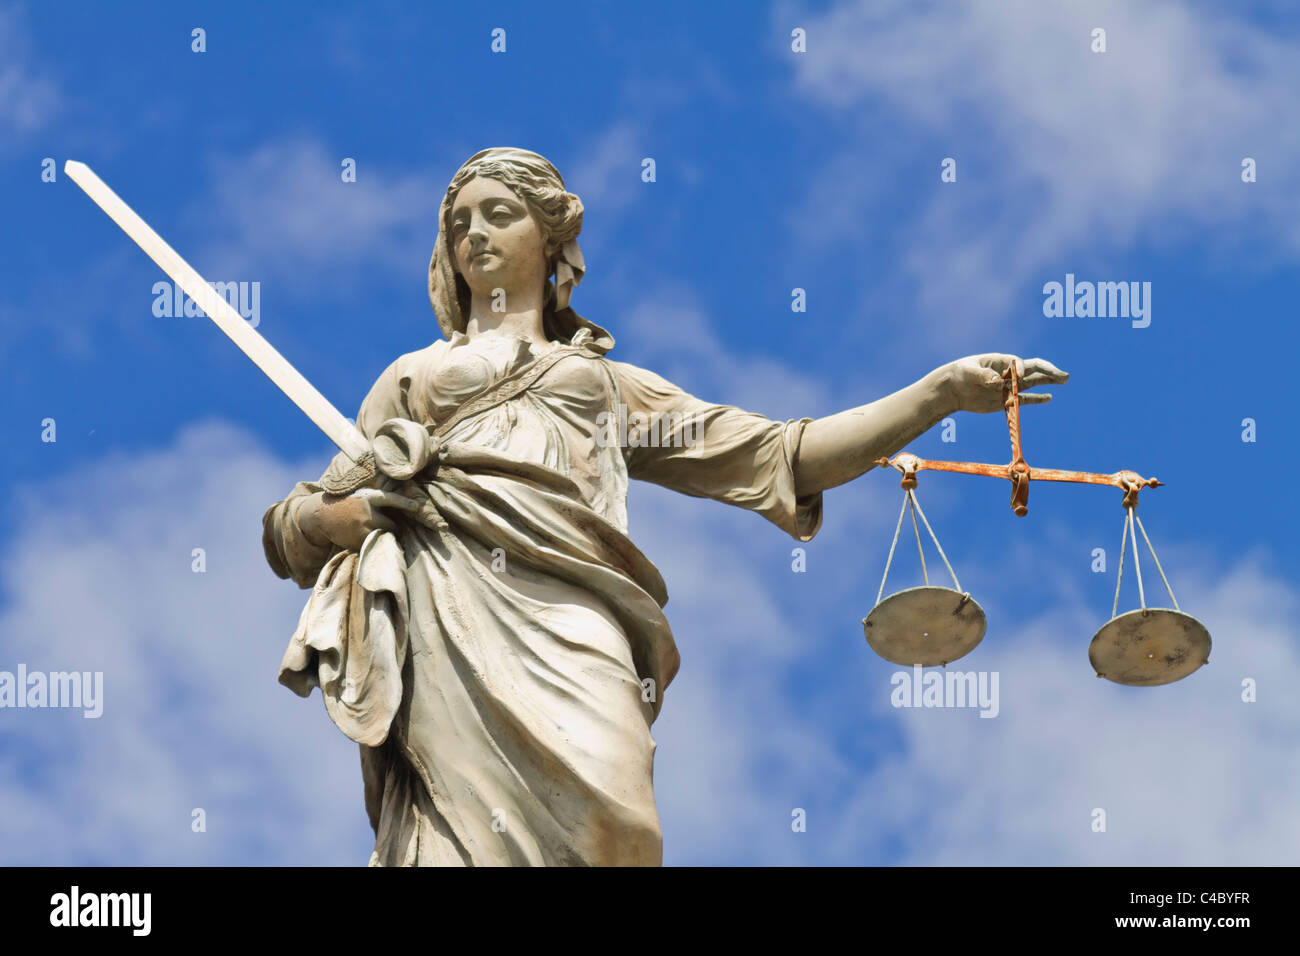 Lady Justice statue in Dublin, Ireland Stock Photo